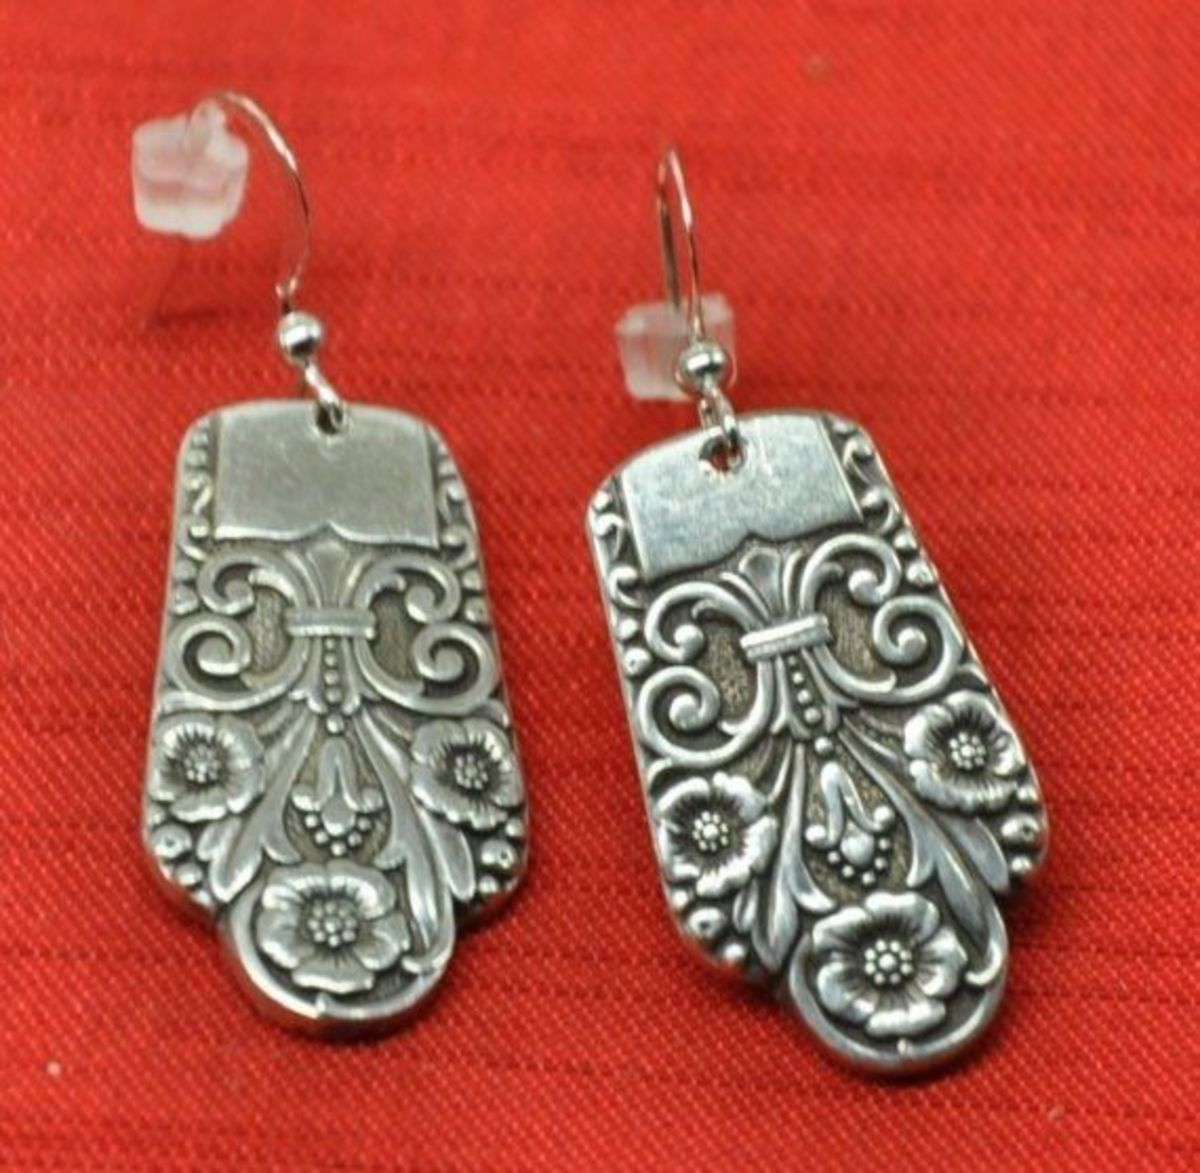 Earrings made from ends of silver spoons. Made by jjevensen. See link below to view these on Etsy.